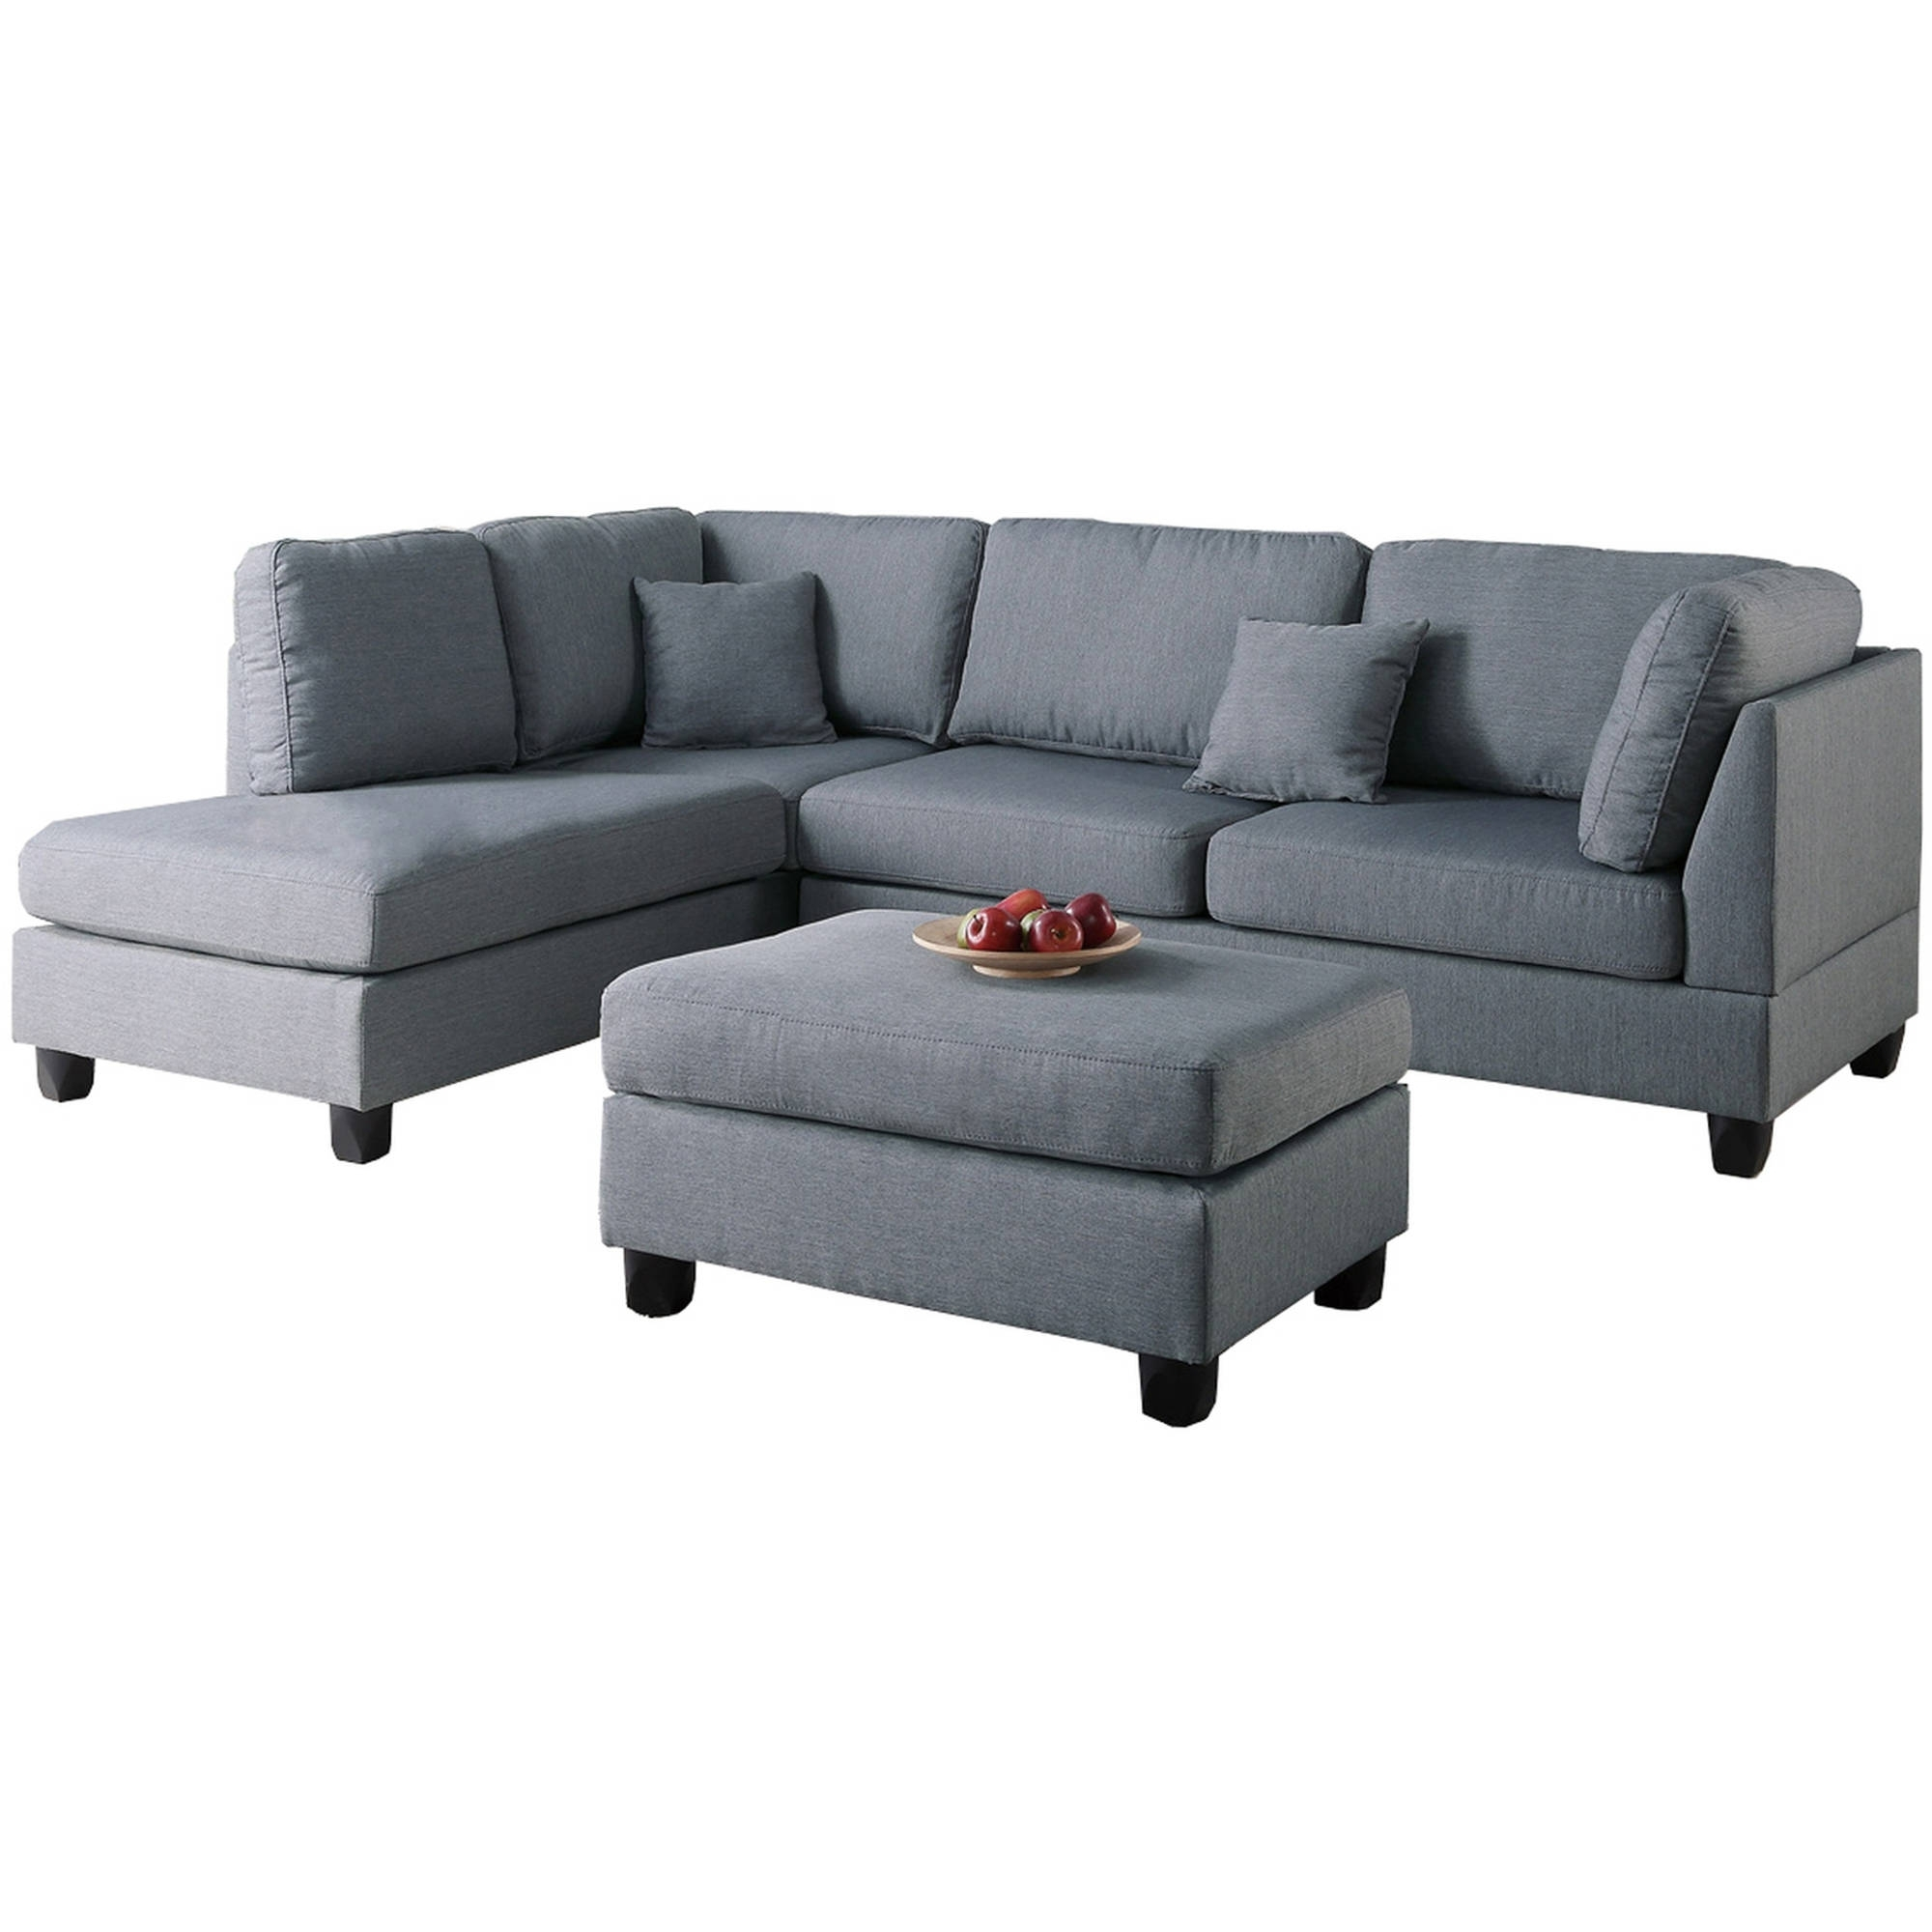 Sectional Sofas Under 200 Within Widely Used Living Room Furniture (View 19 of 20)